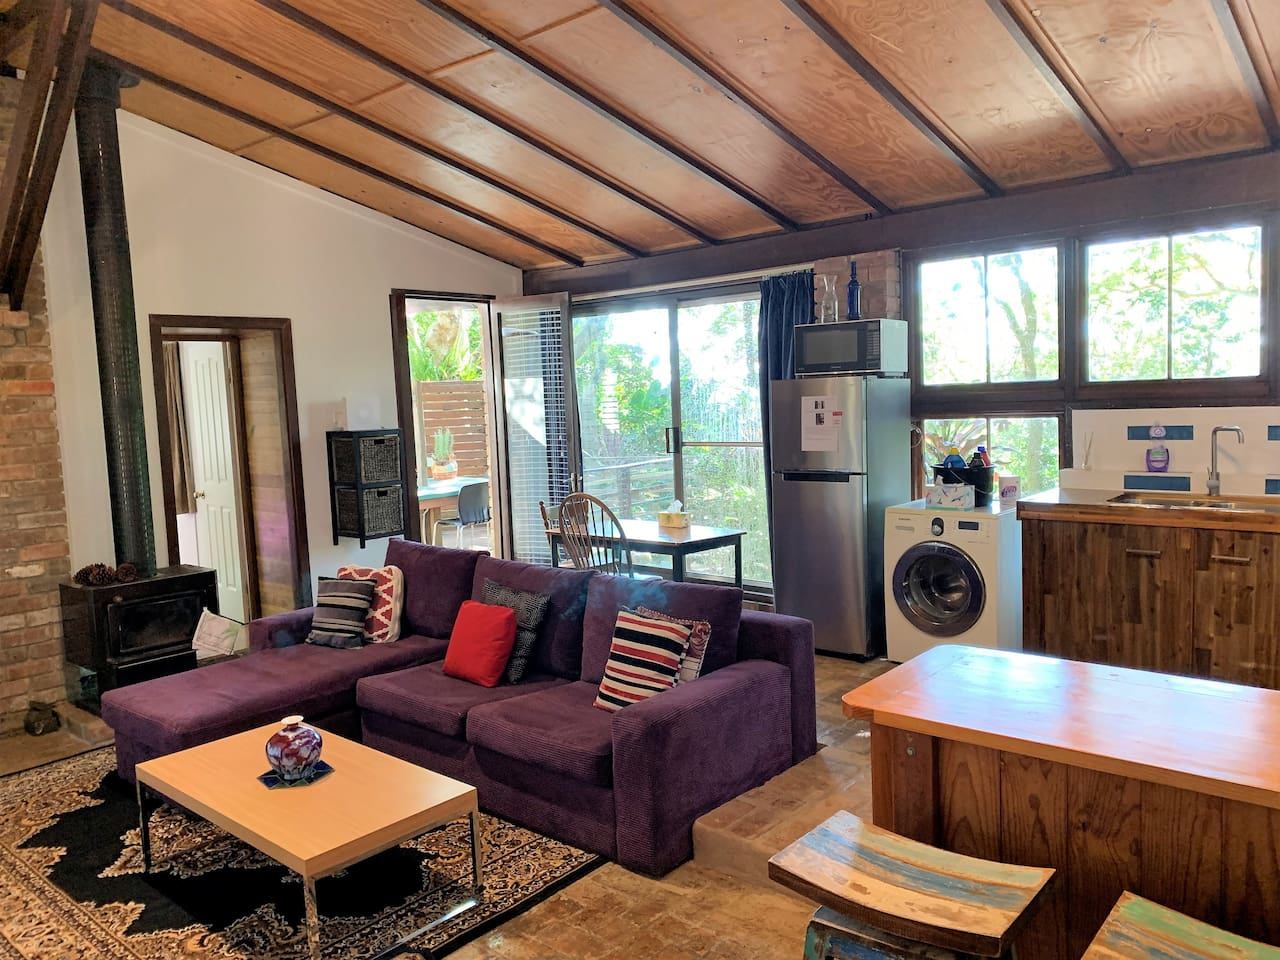 Living area opening out to a large North facing deck overlooking tropical gardens.